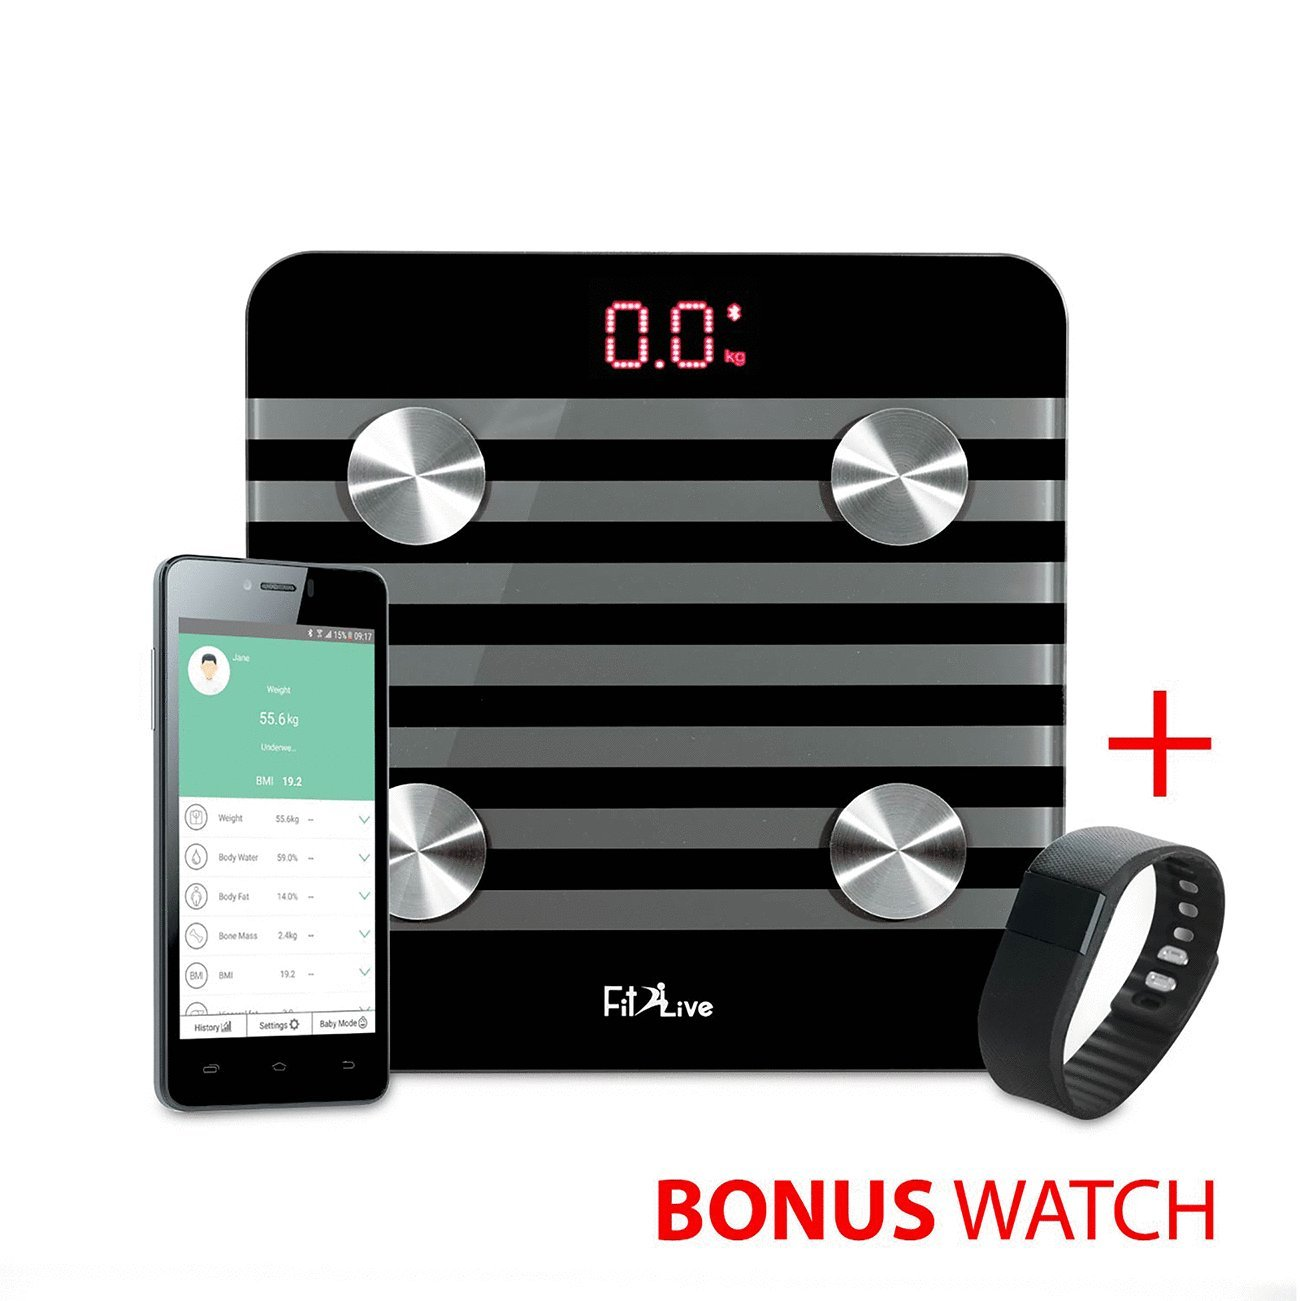 Bluetooth Body Fat Scale - Fit2Live Smart Wireless Digital Bathroom Weight Scale Body Composition Analyzer Health Monitor with IOS and Android APP for Body Weight, Fat, Water, BMI, BMR, Muscle Mass